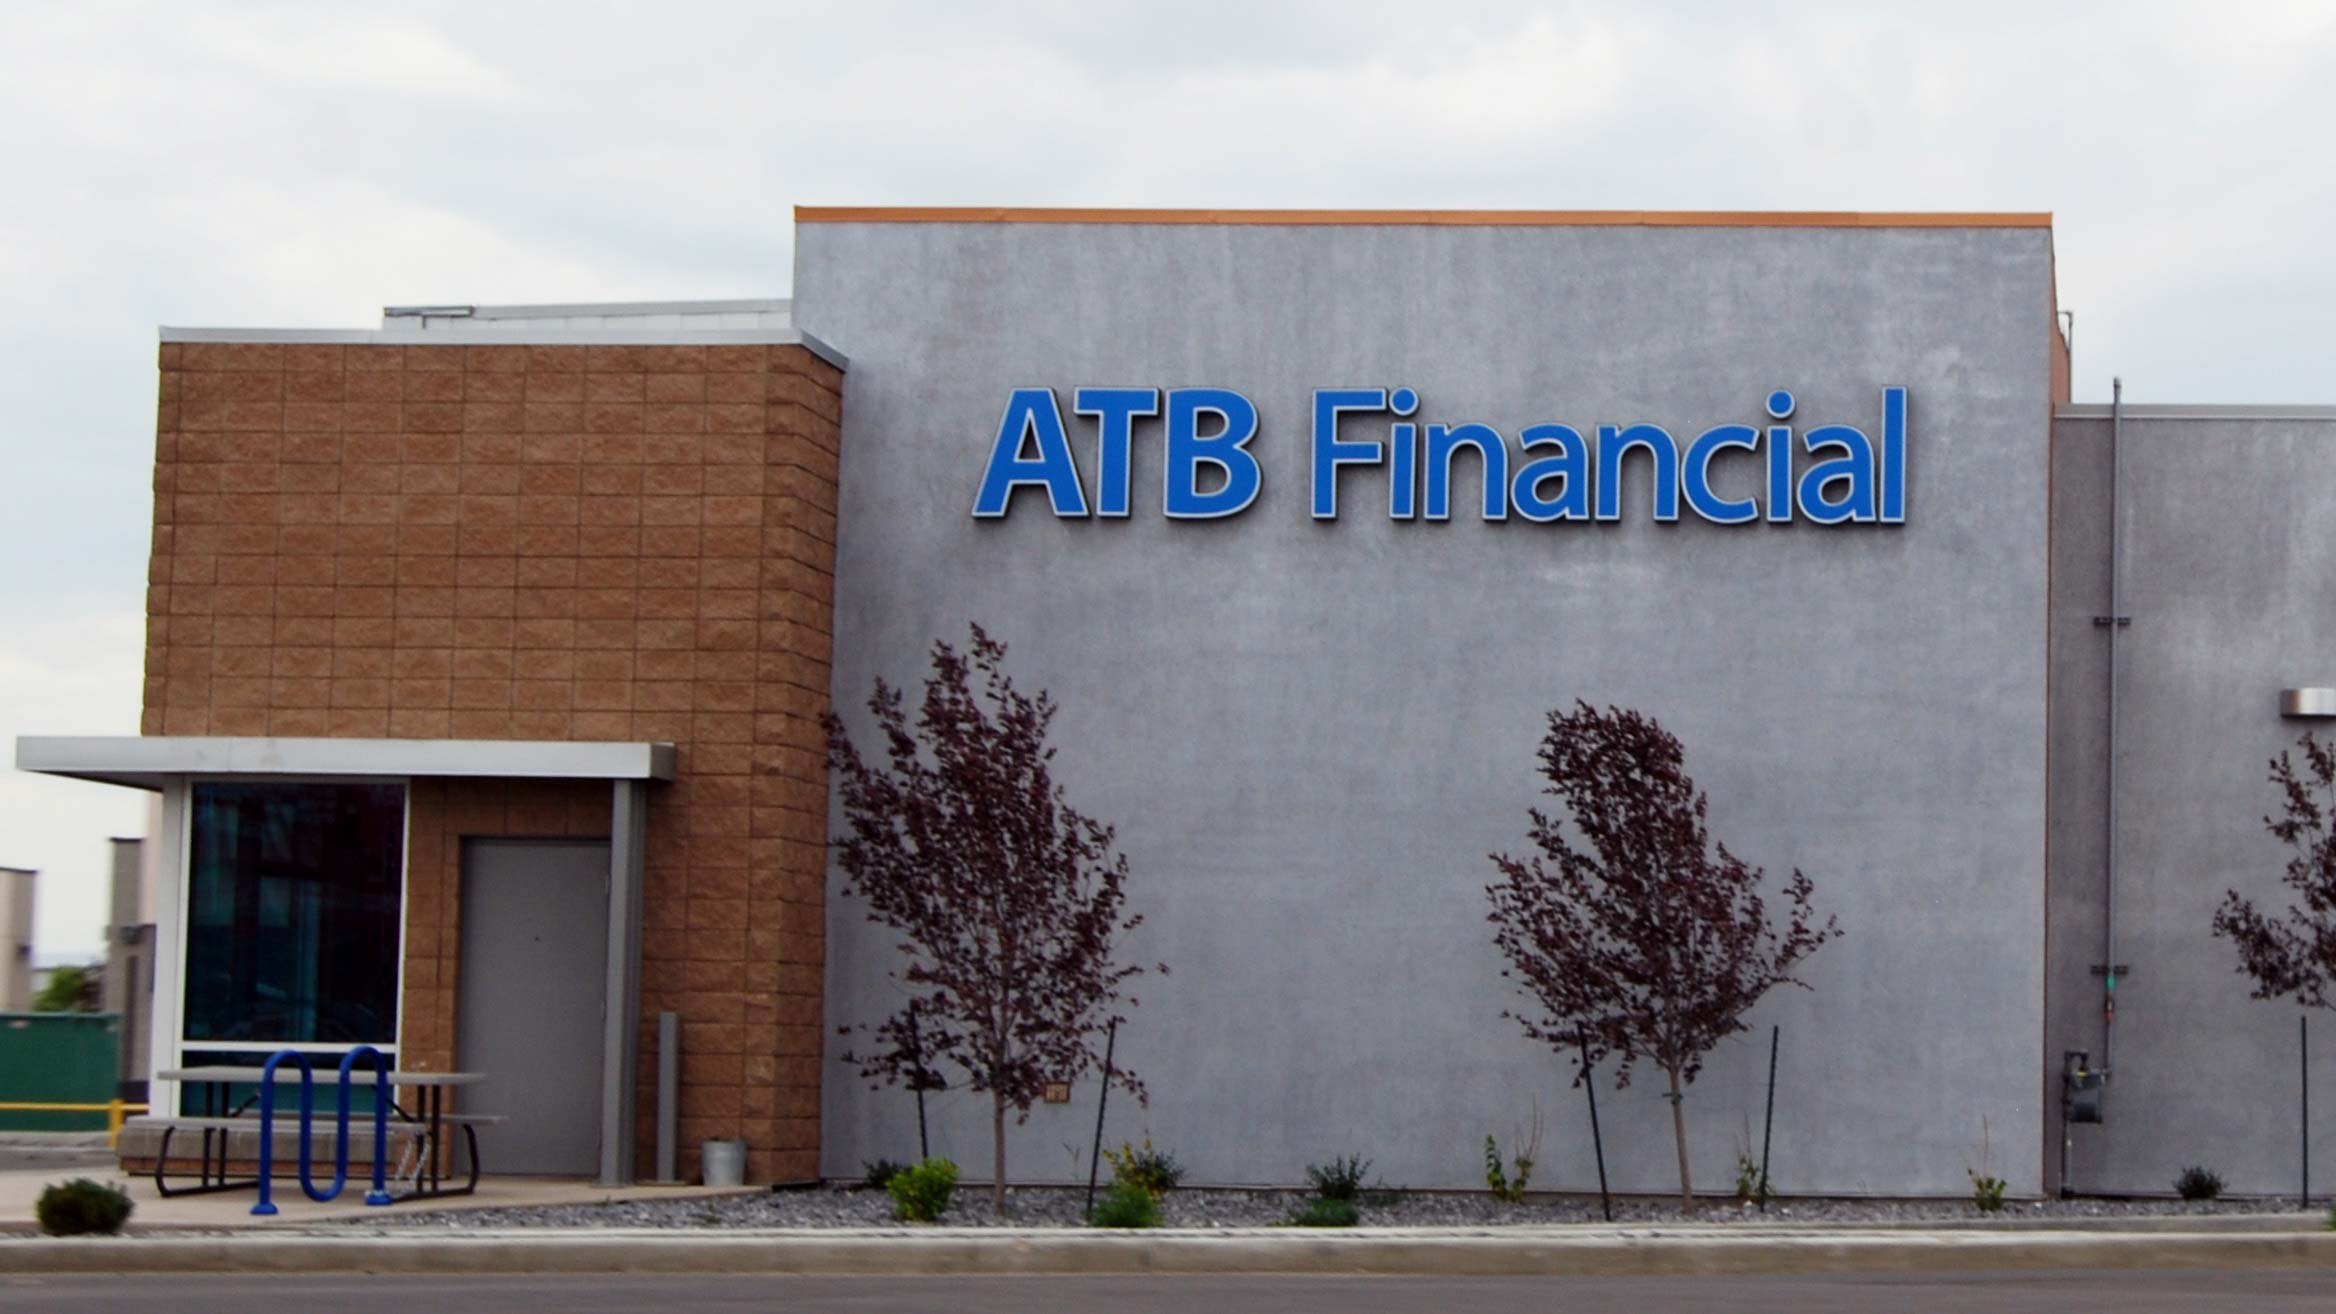 atb financial building - atb apple pay